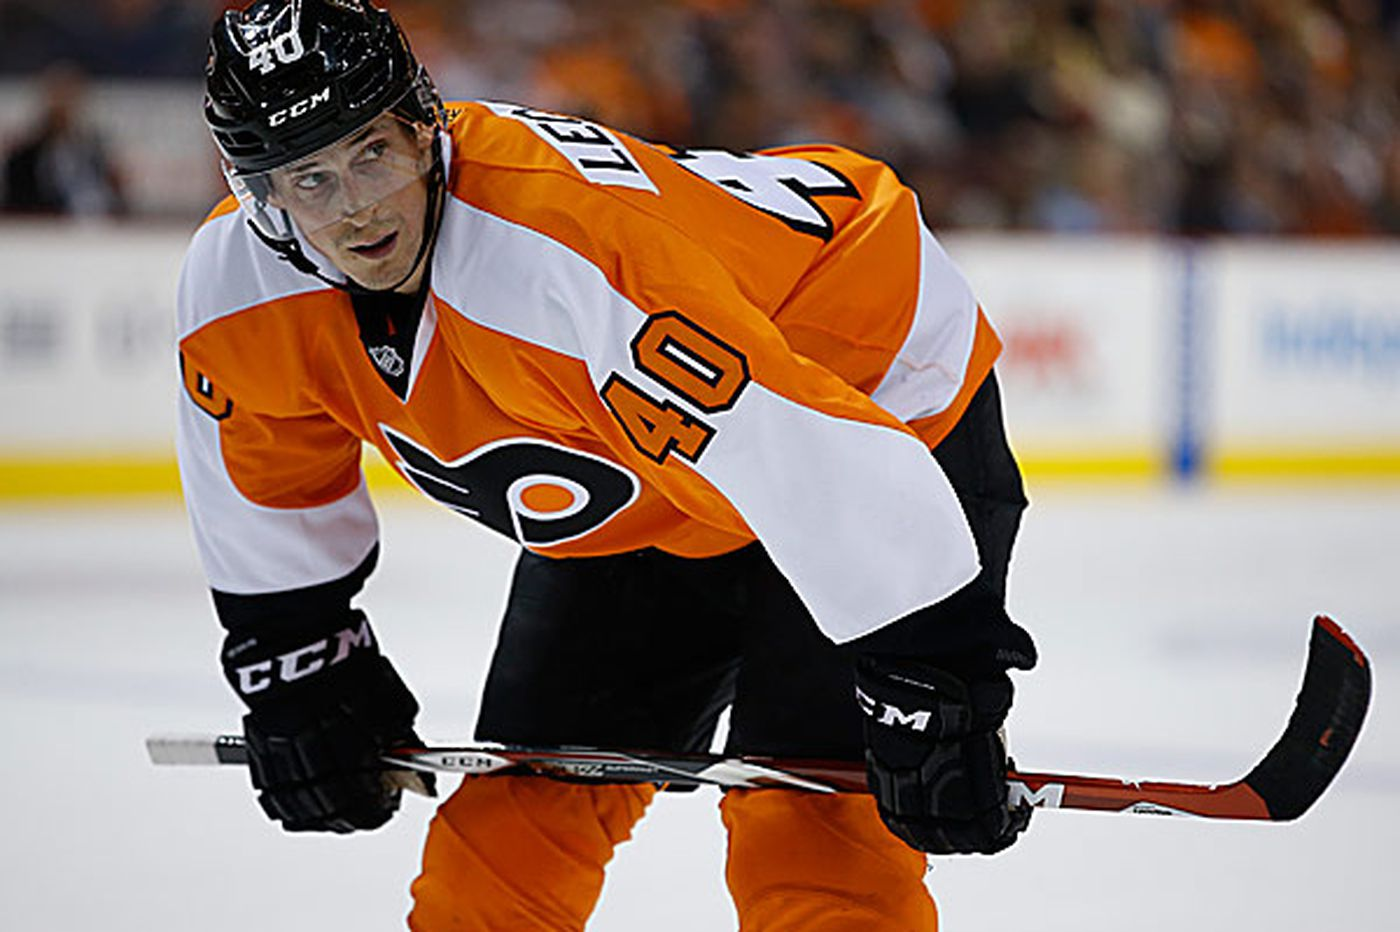 Salary cap not friendly to Flyers